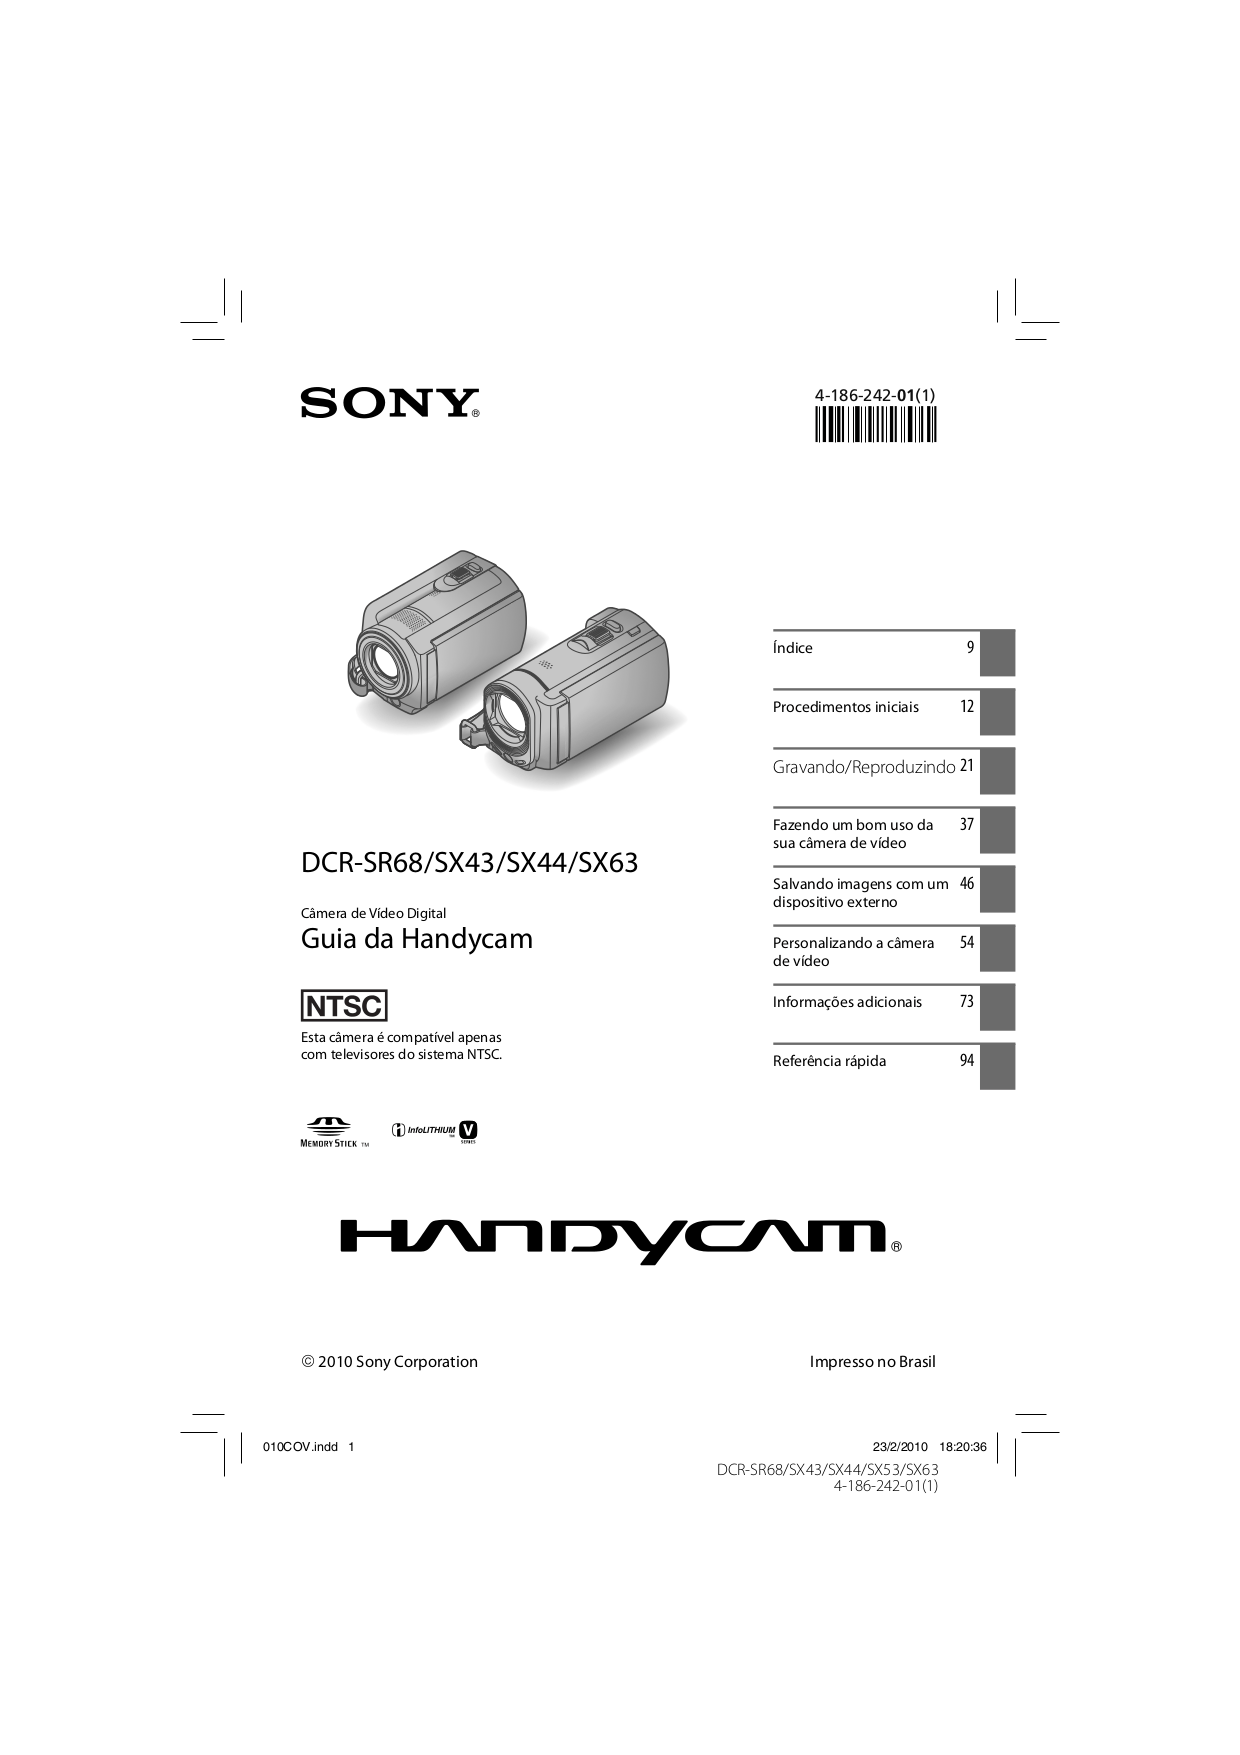 PDF manual for Sony Camcorders Handycam DCR-SX44